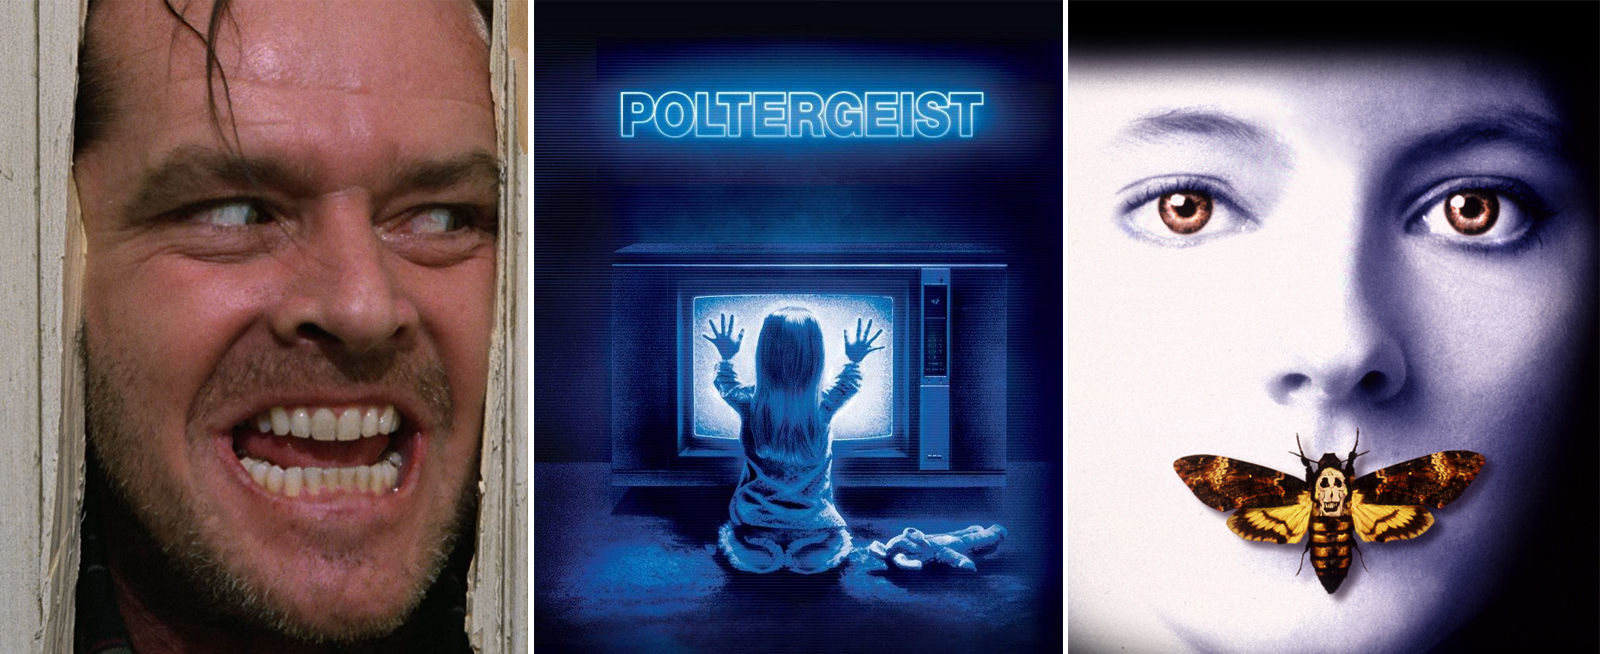 From left to right: The Shining, Poltergeist, and Silence of the Lambs.